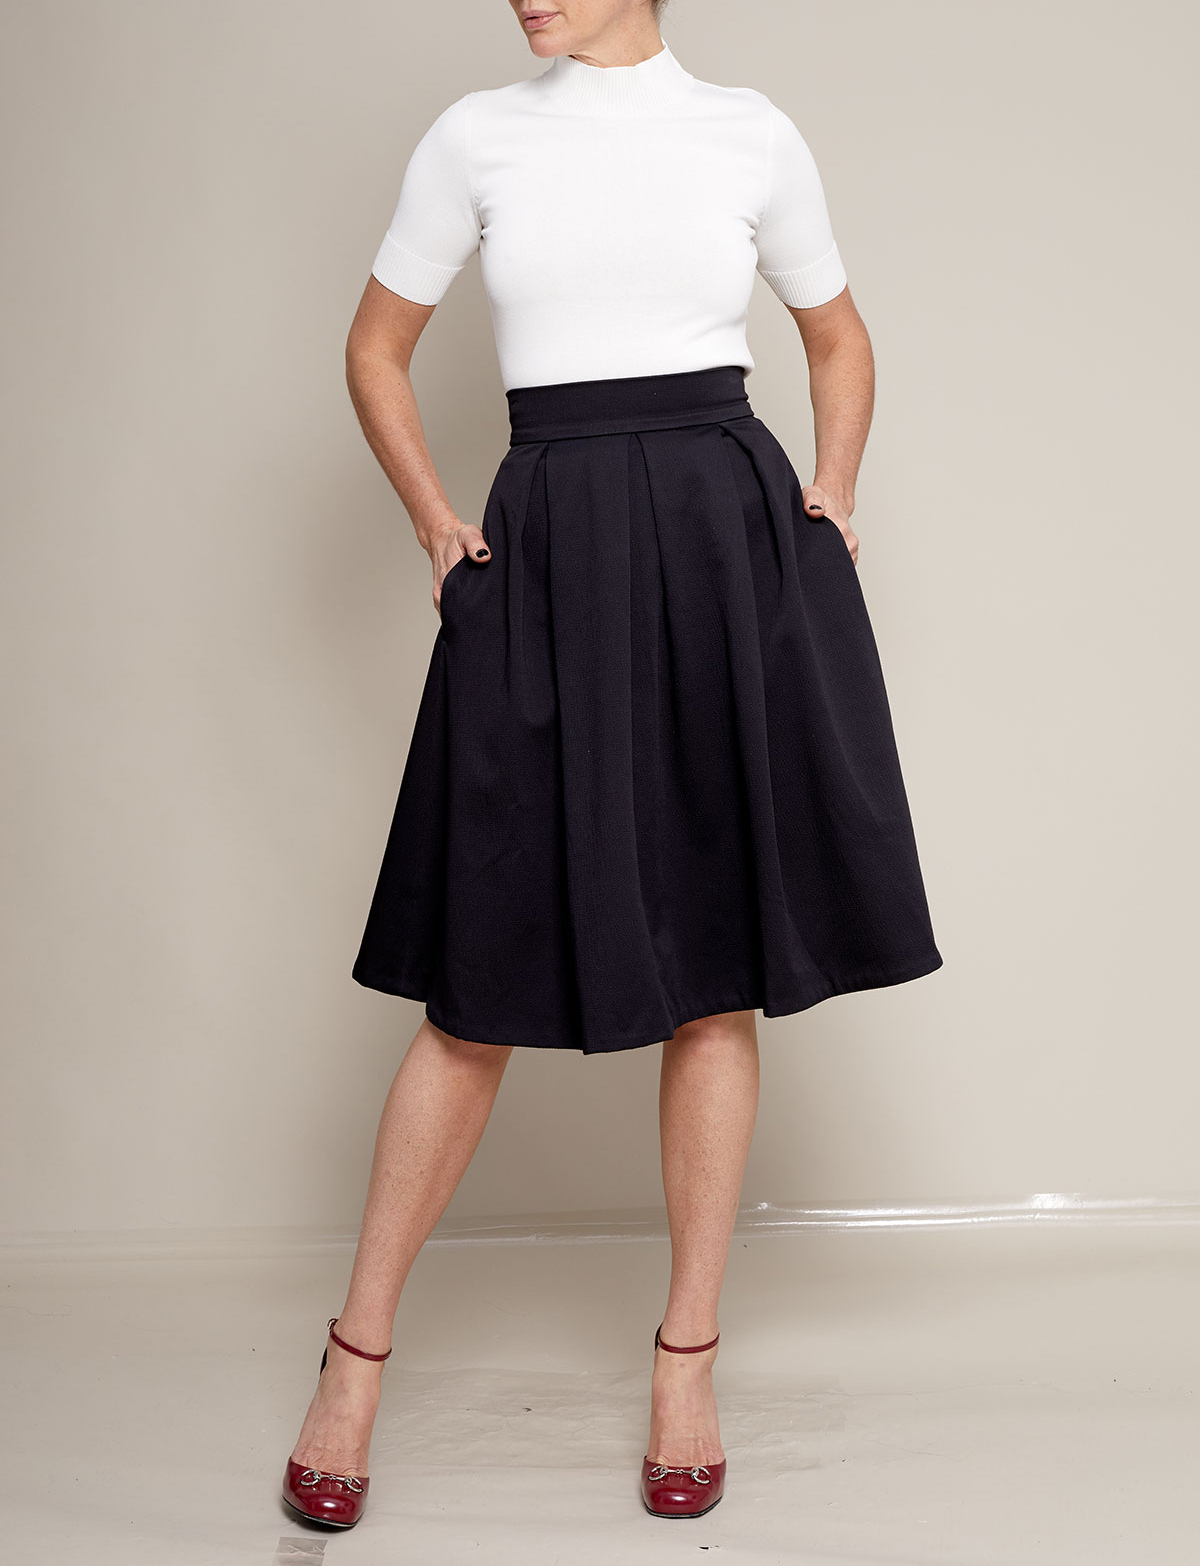 Just Patterns Stephanie Skirt 4.jpg